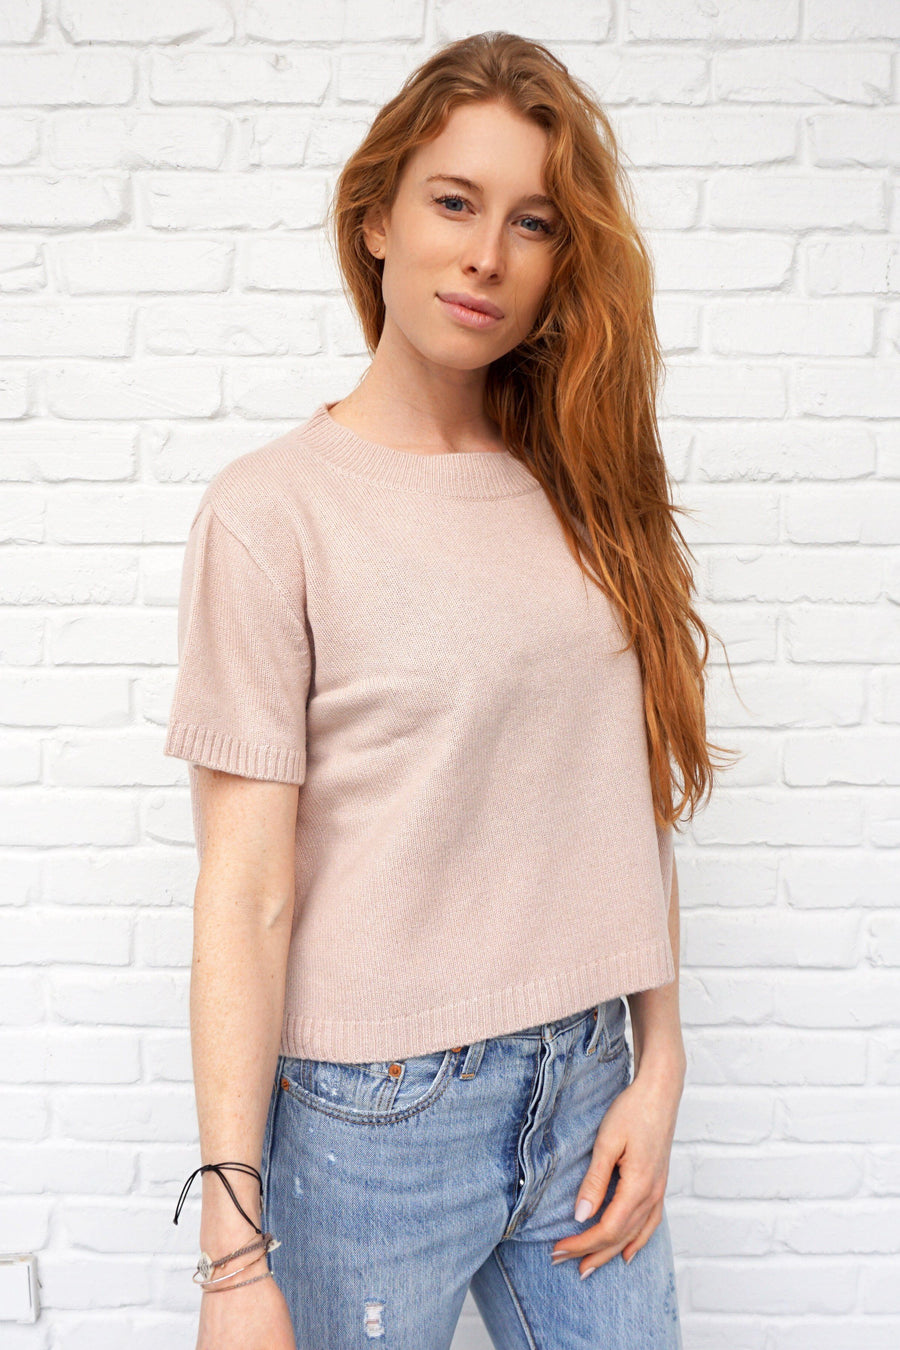 pine cashmere women's crewneck  lightweight 100% pure cashmere cropped top in dusty pink